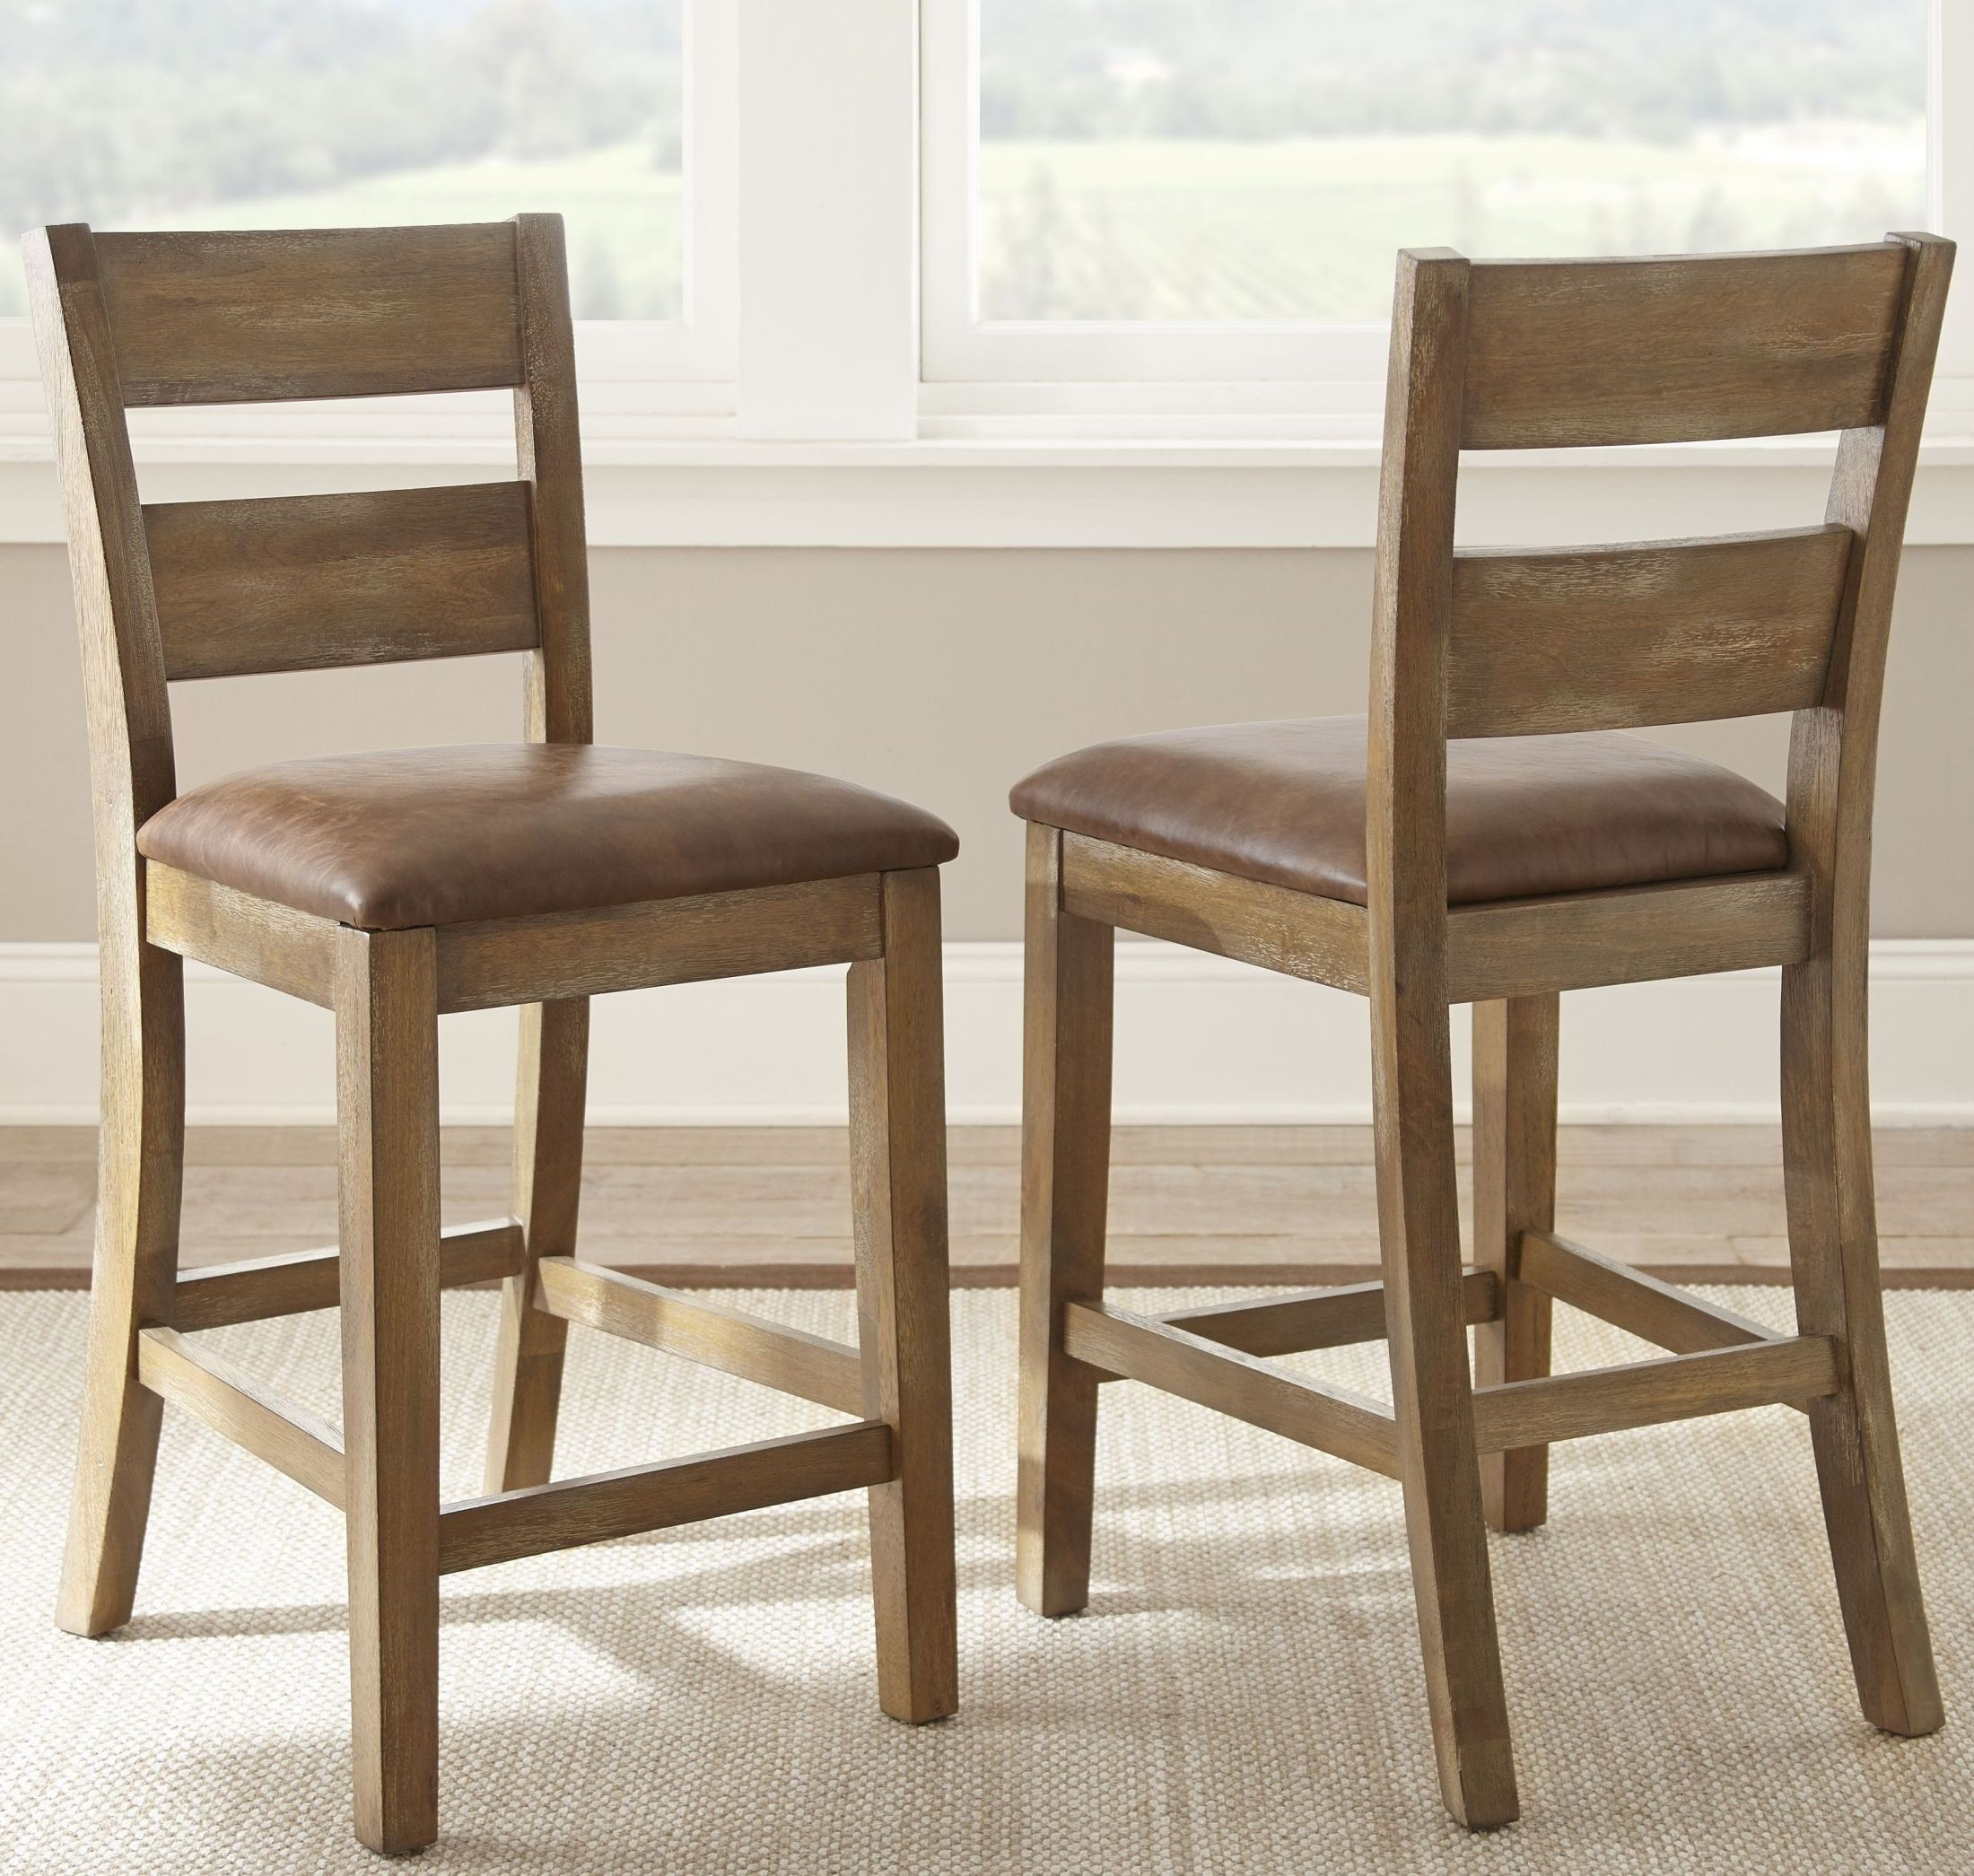 counter height chairs set of 2 chair cover rentals el paso cambrey rustic honey from